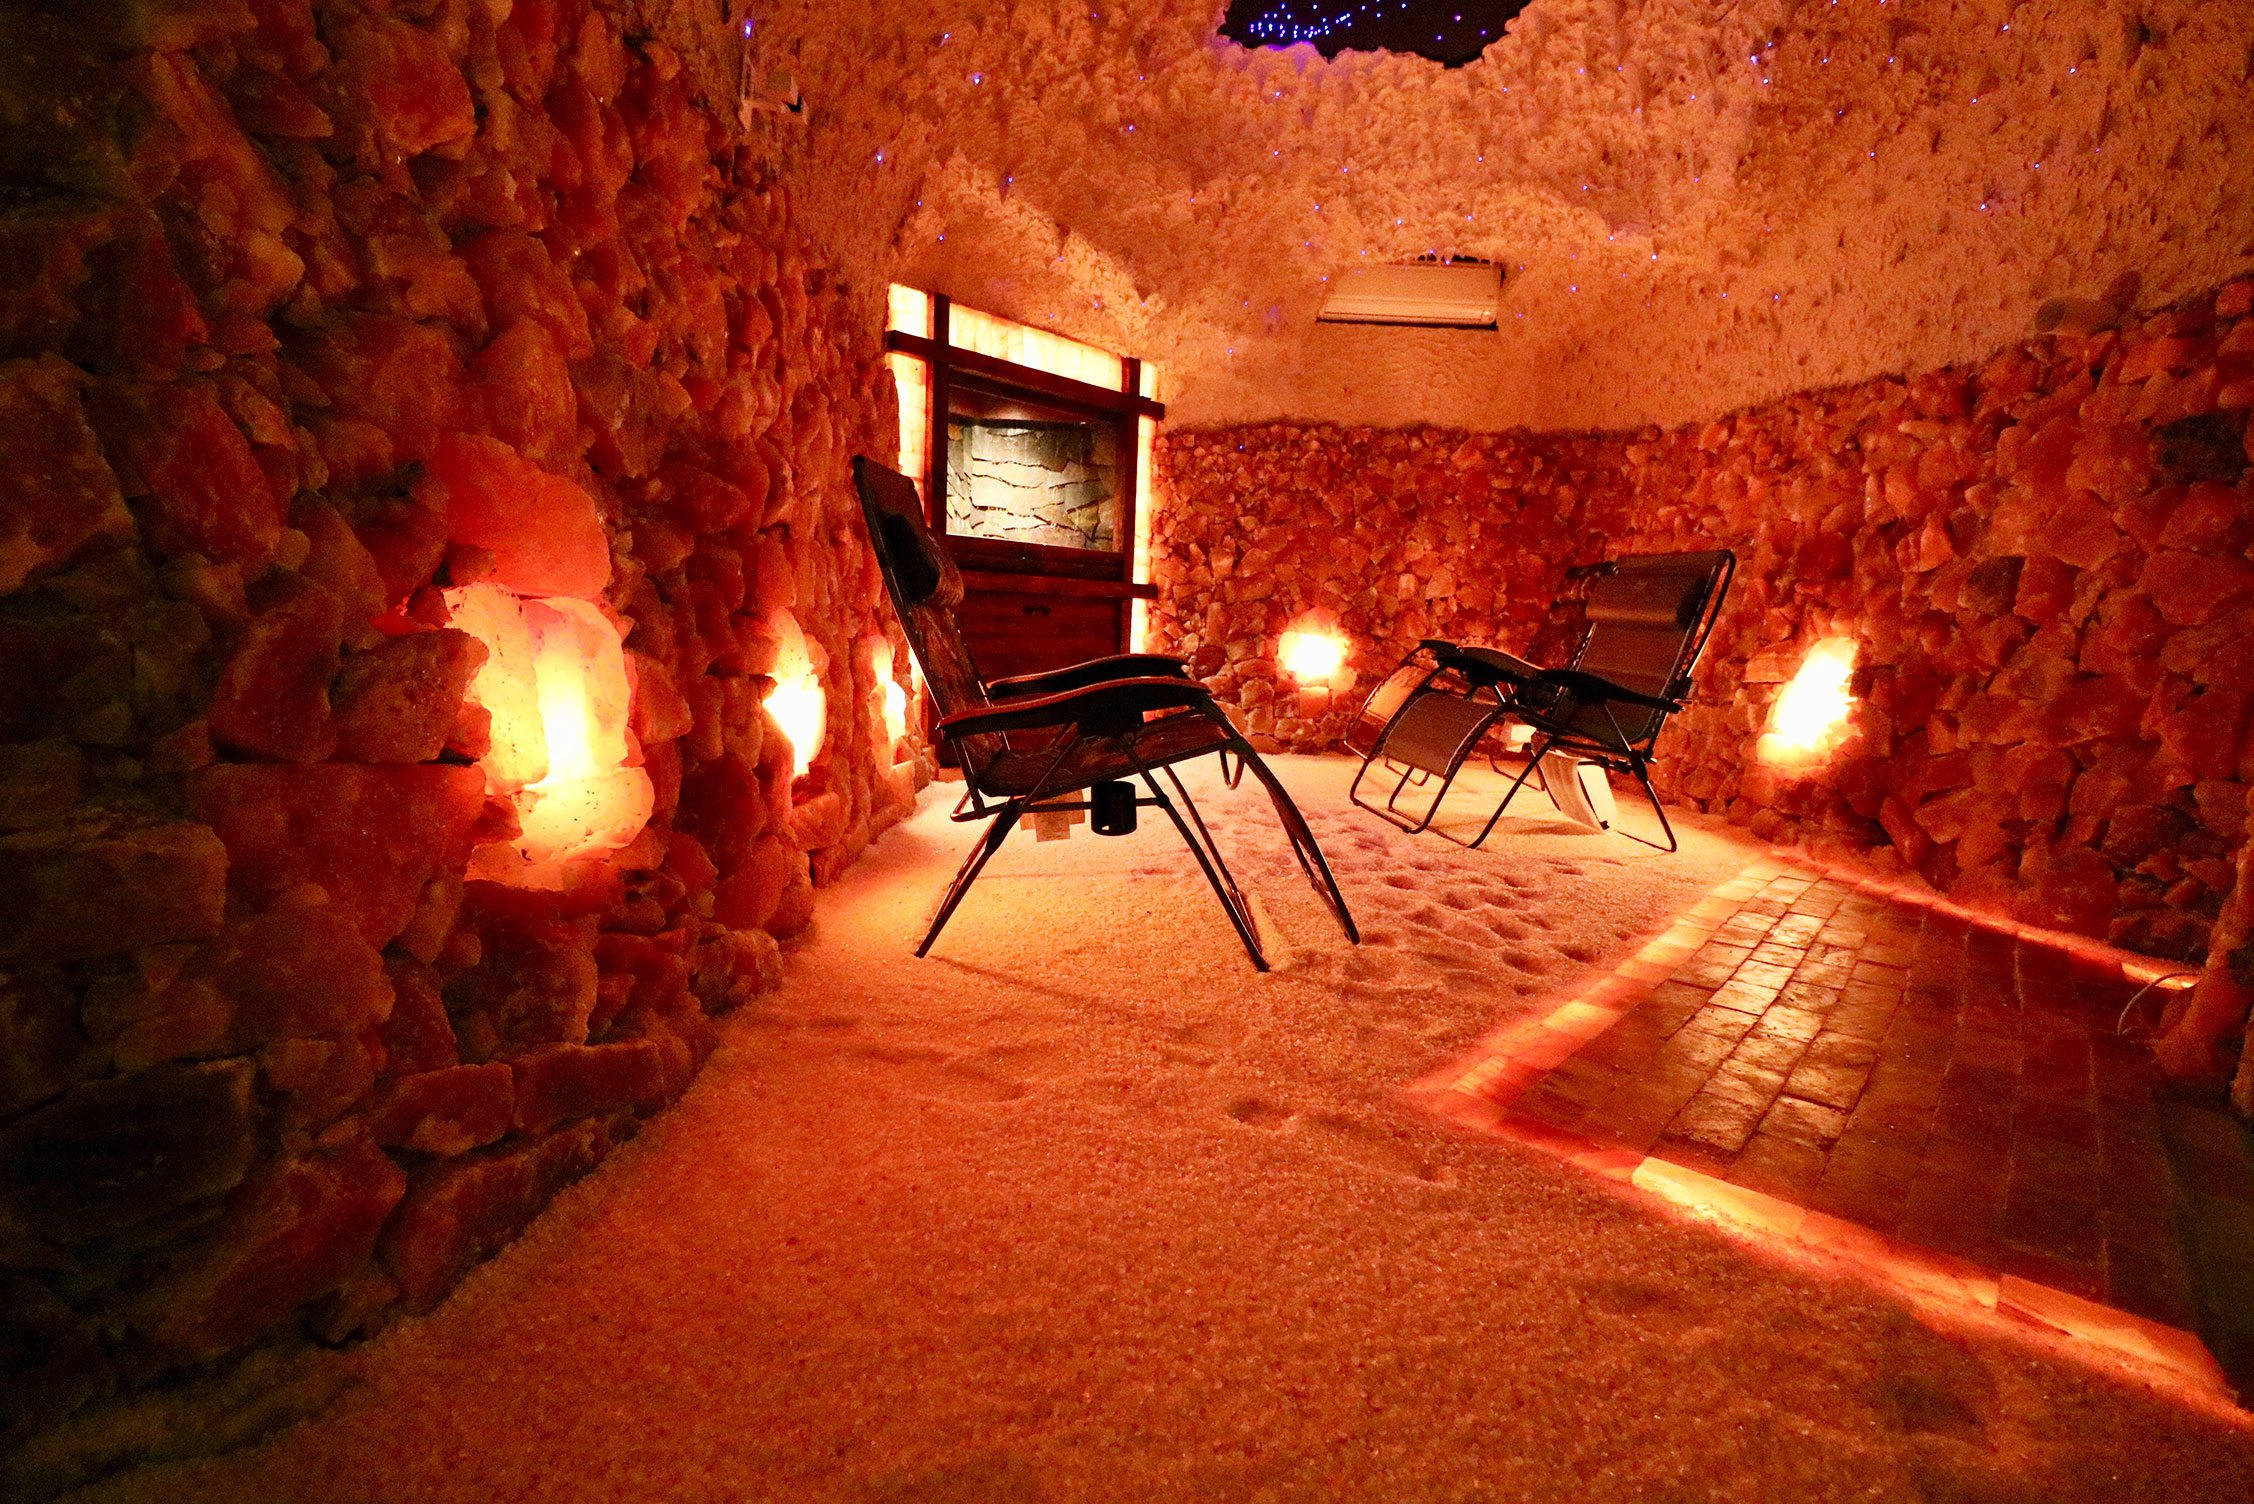 The salt room spa contains a temperature and humidity controlled atmosphere of ionized air (negatively charged ions) that is anti-bacterial, anti-viral, and microbe-free